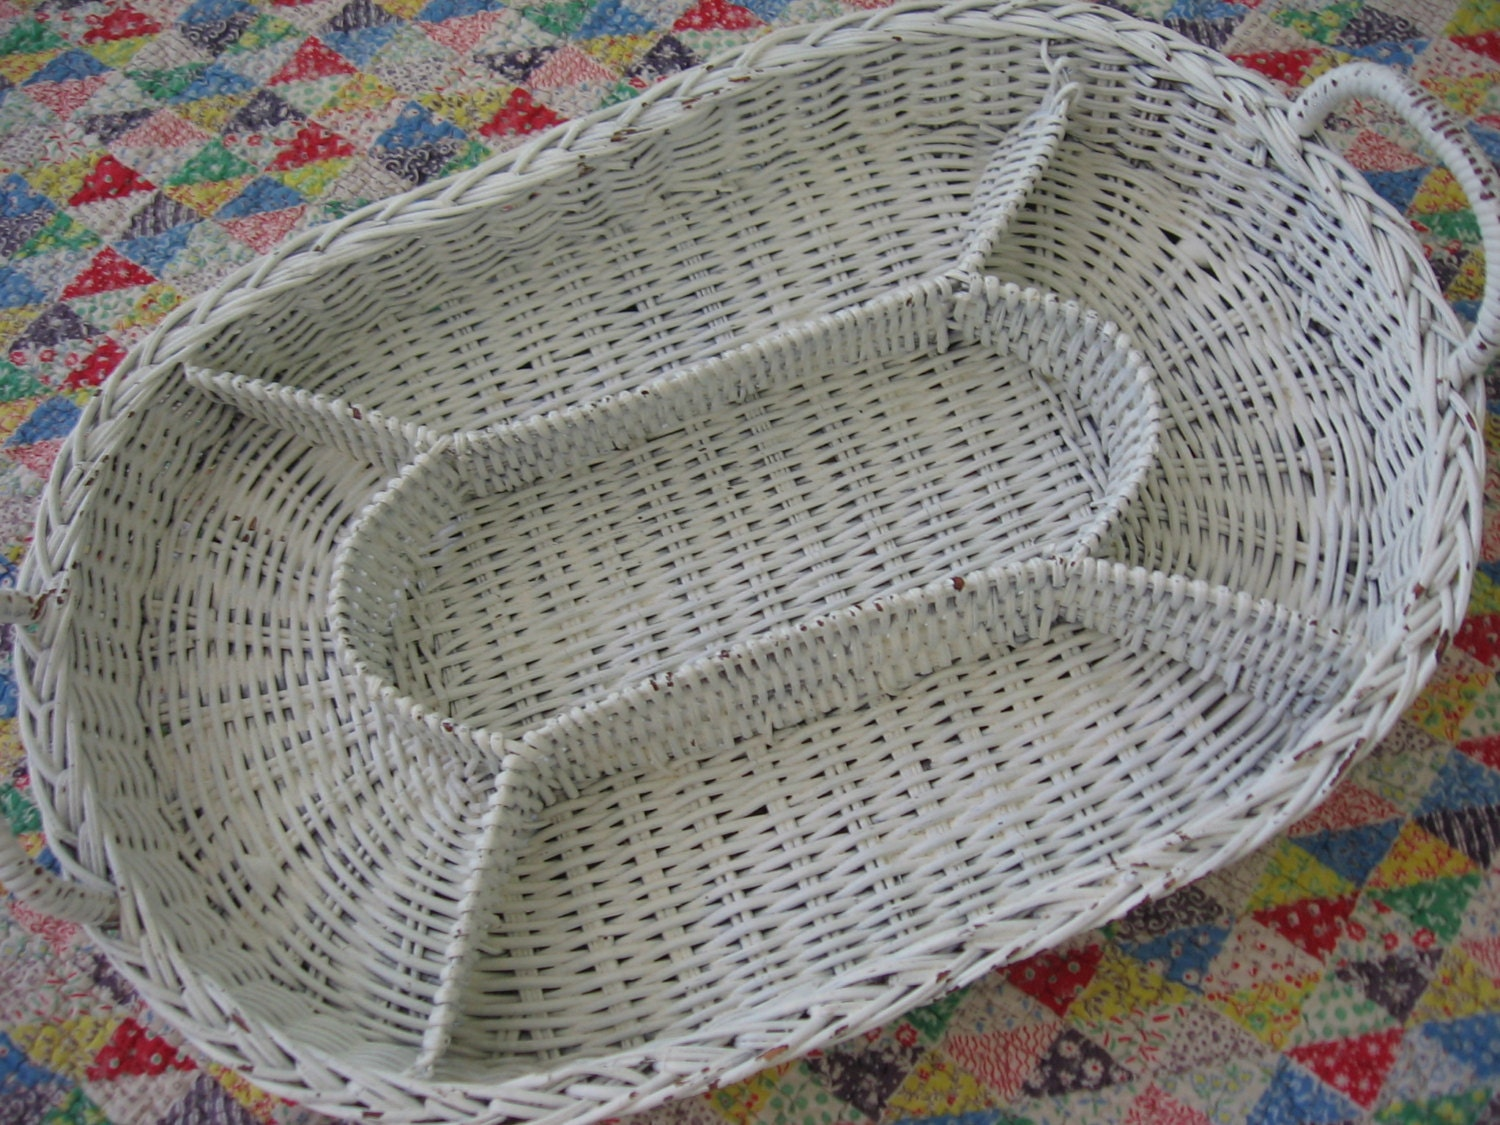 Wicker Basket With Sections : Vintage white wicker divided tray basket with handles